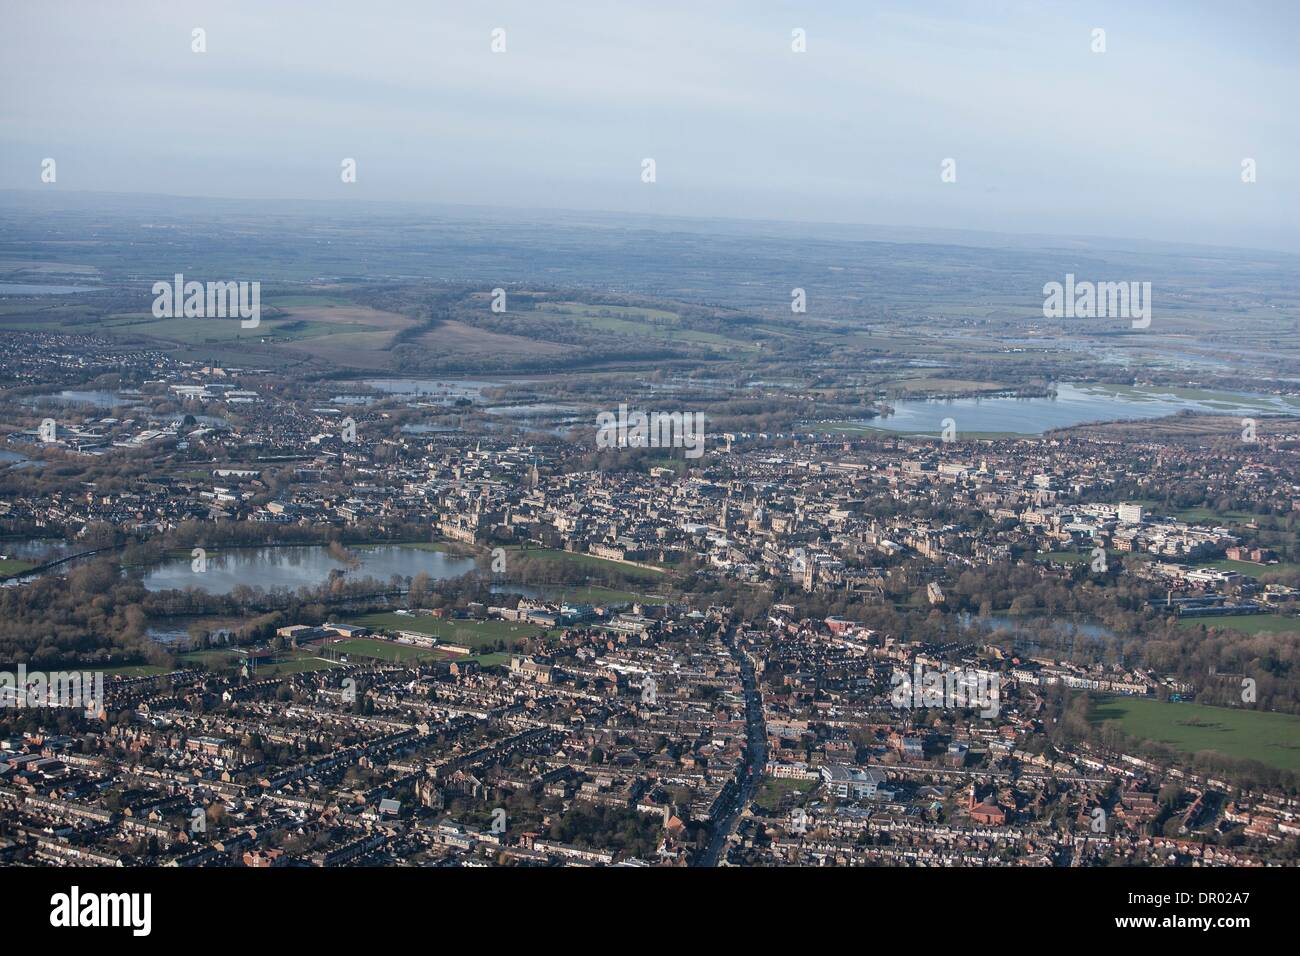 Oxford, UK. 14th January 2014. The  Thames, Oxford in  flood .  View of Oxford, looking  North West over St Clements, East Oxford and the Cowley road,   with  Portmeadow to the top , a natural flood plain. Credit:  adrian arbib/Alamy Live News - Stock Image